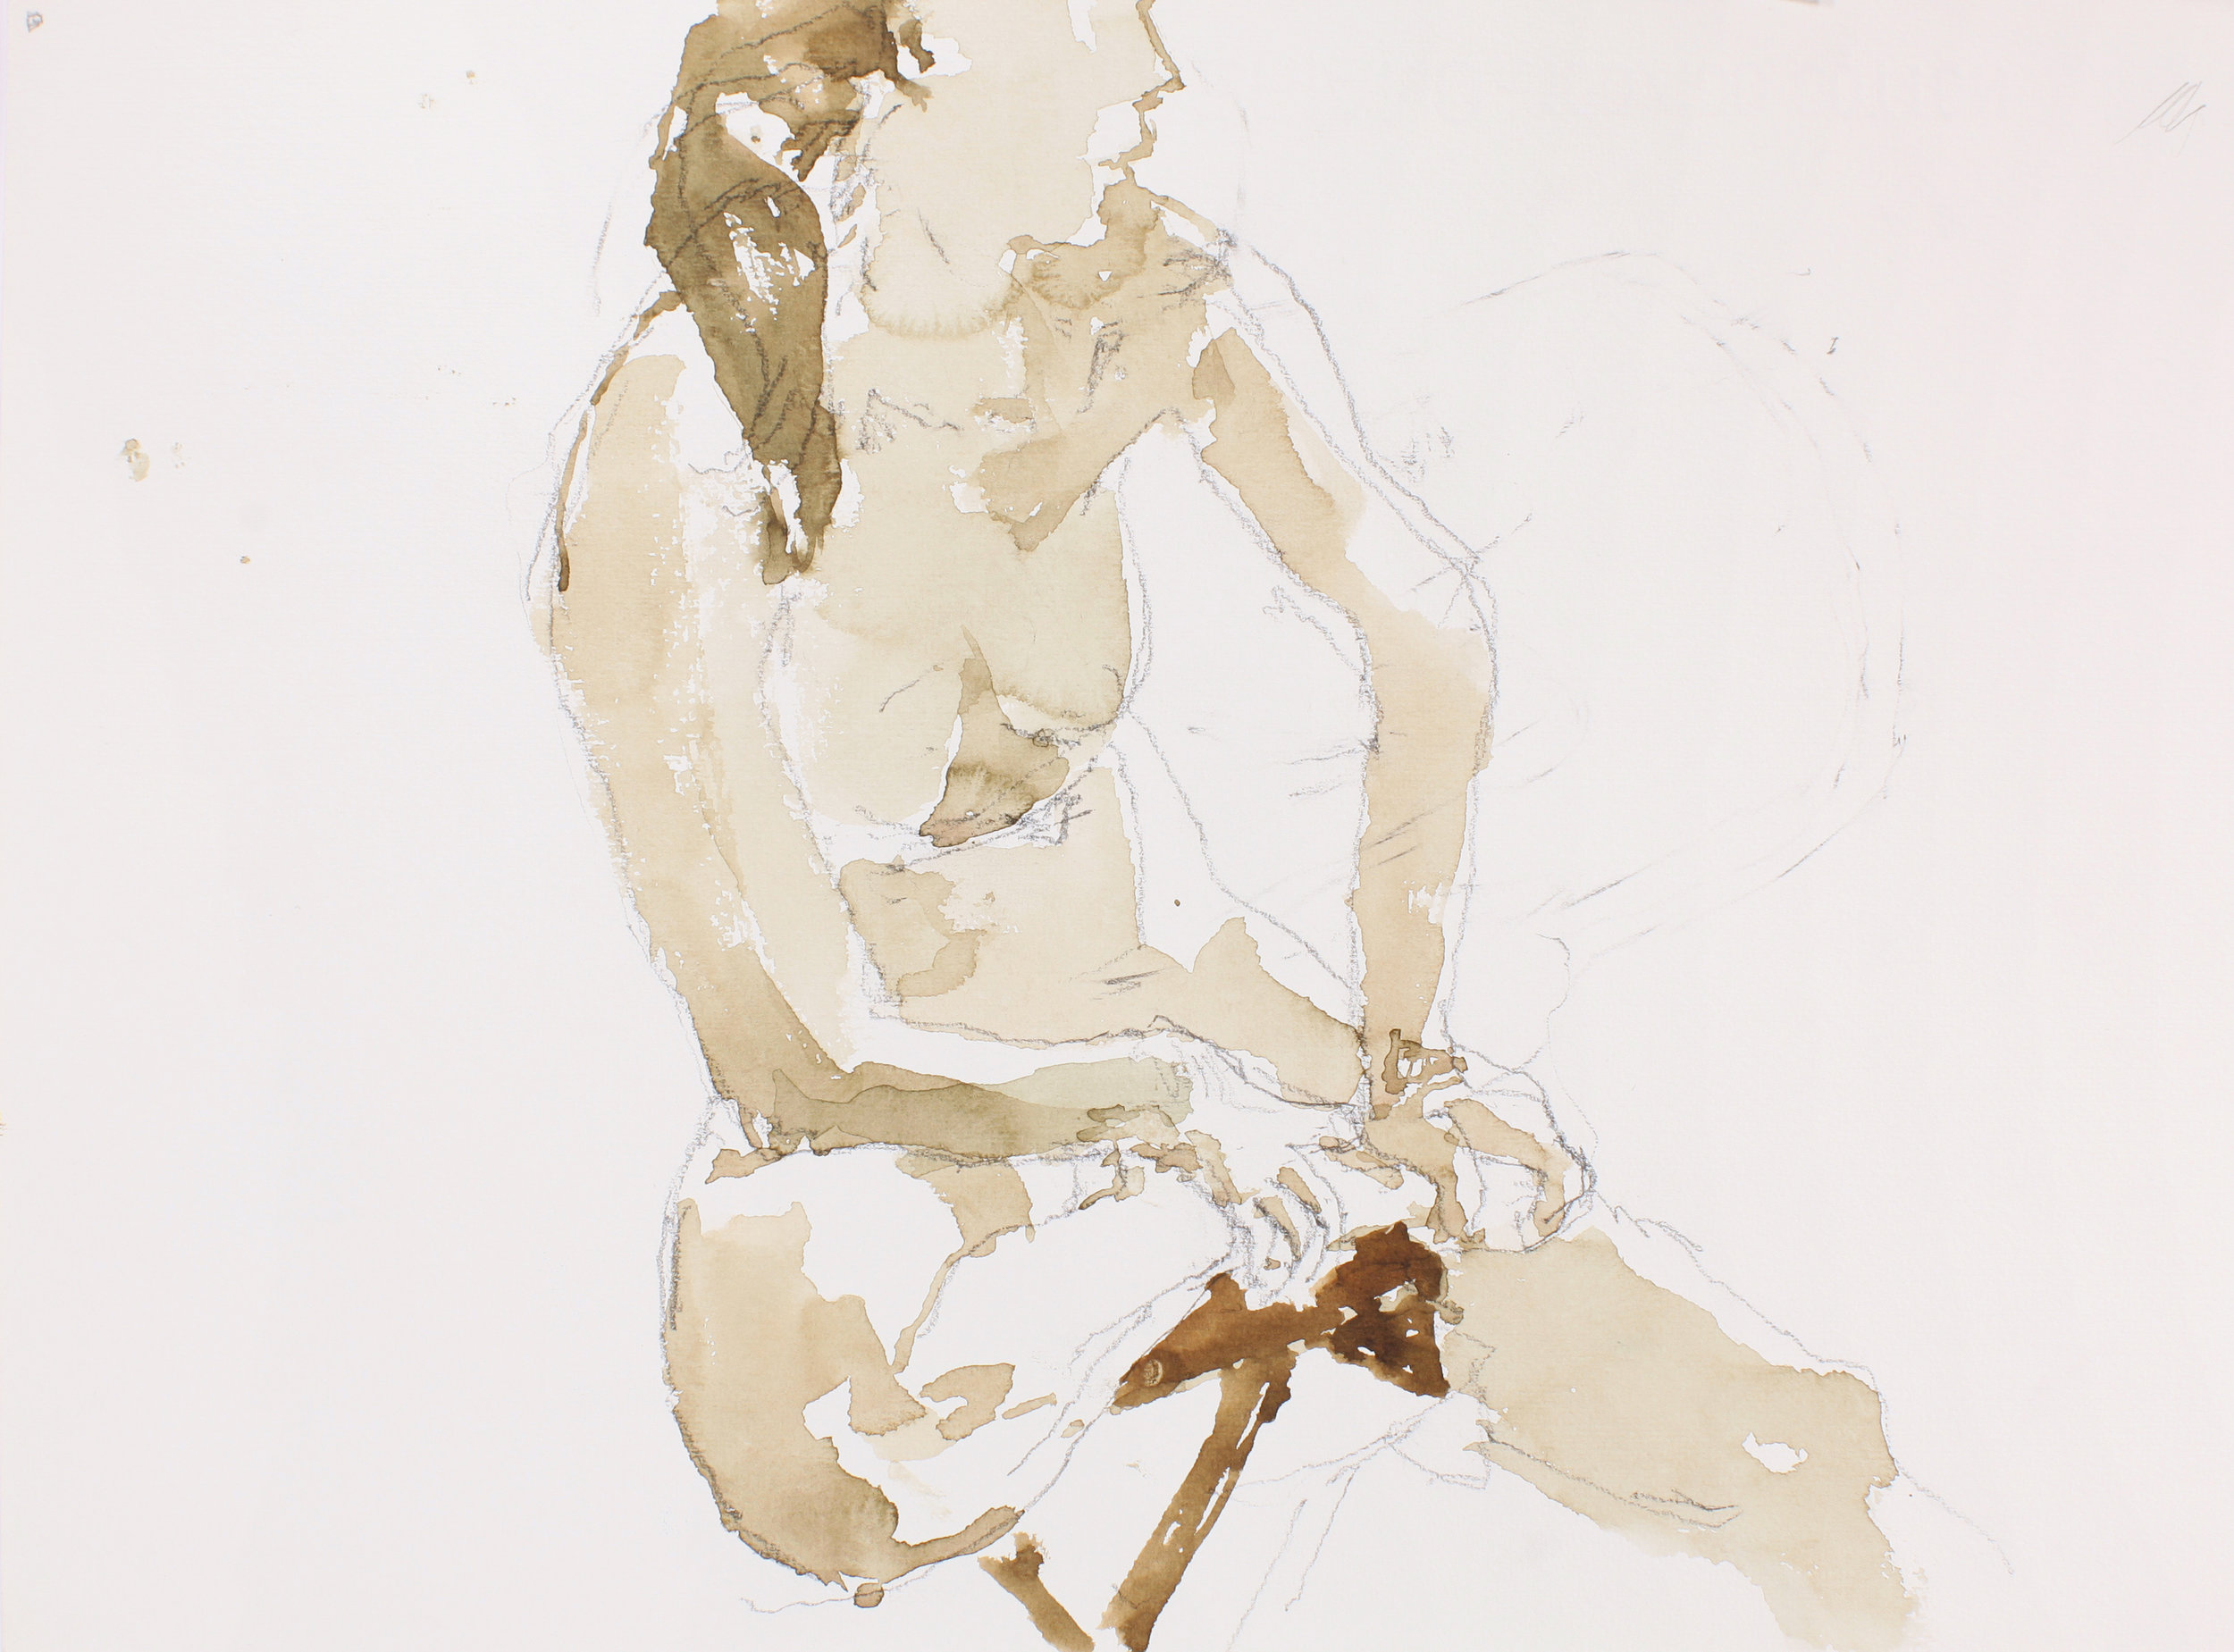 2005_Seated_Nude_Holding_Ankle_Profile_watercolour_and_pencil_on_paper_11x15in_28x38cm_WPF079.jpg